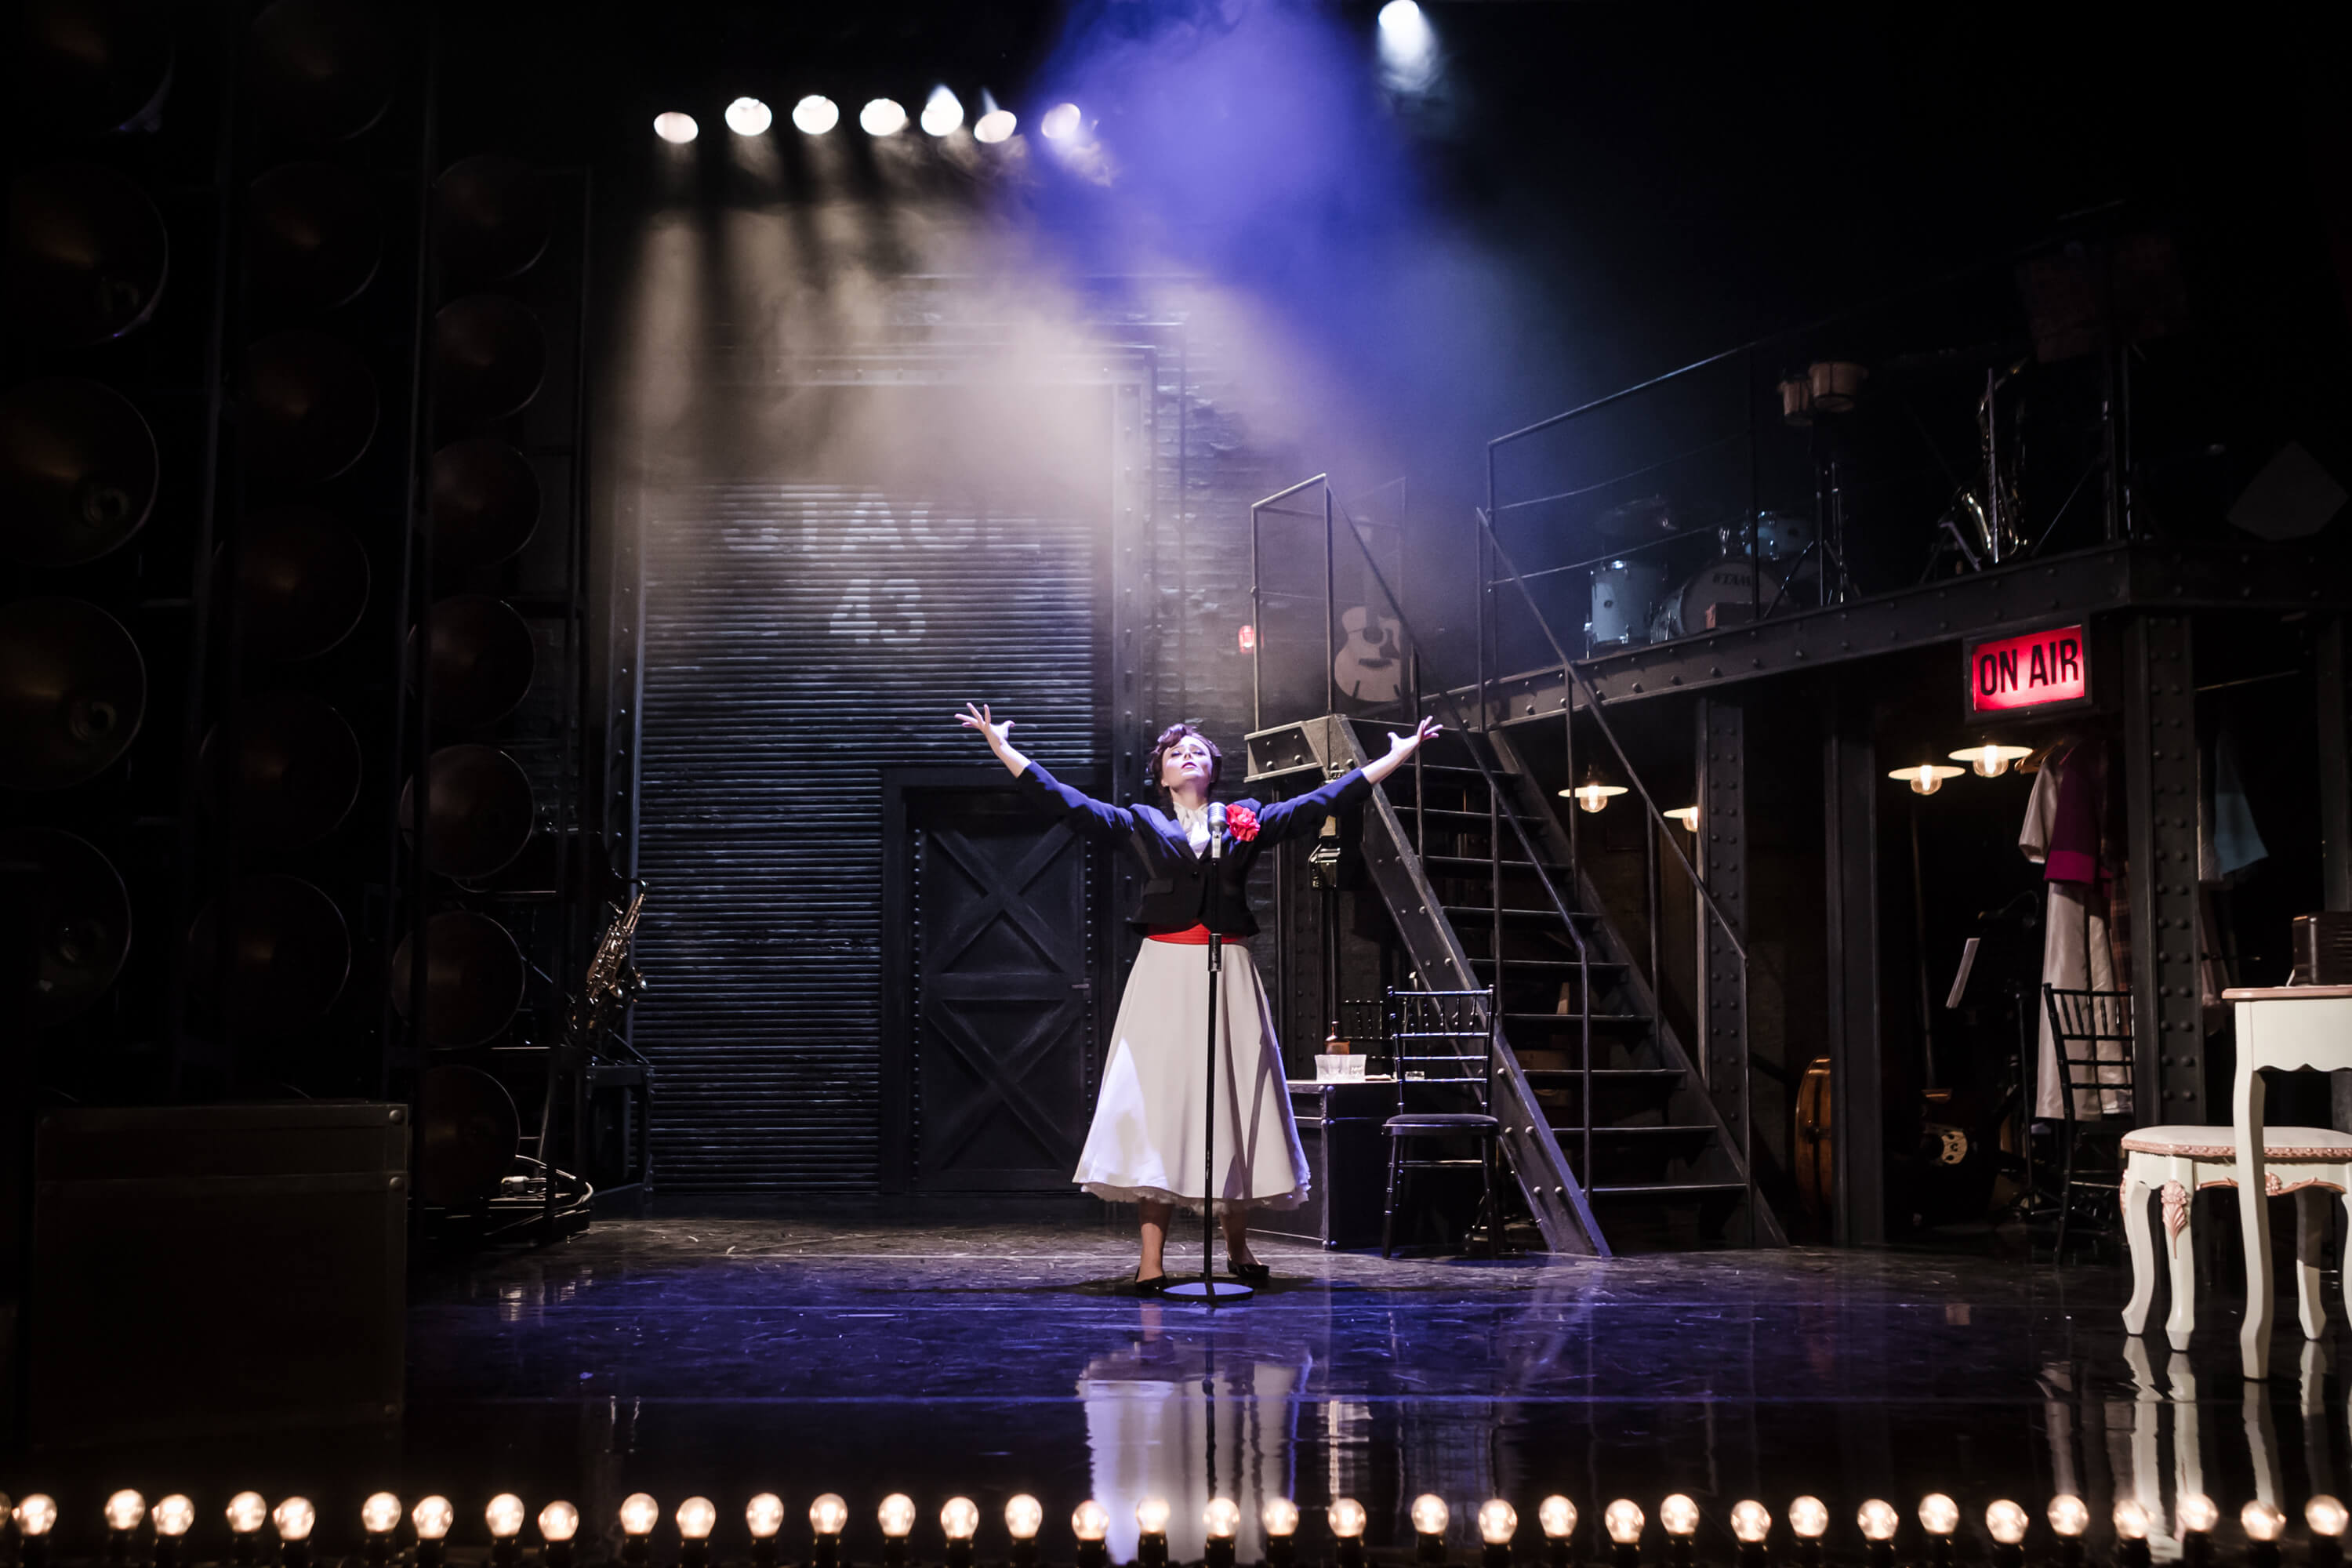 Judy!, Arts Theatre, Director: Ray Rackham, Designer: Tom Paris, Lighting: Jack Weir, 2017